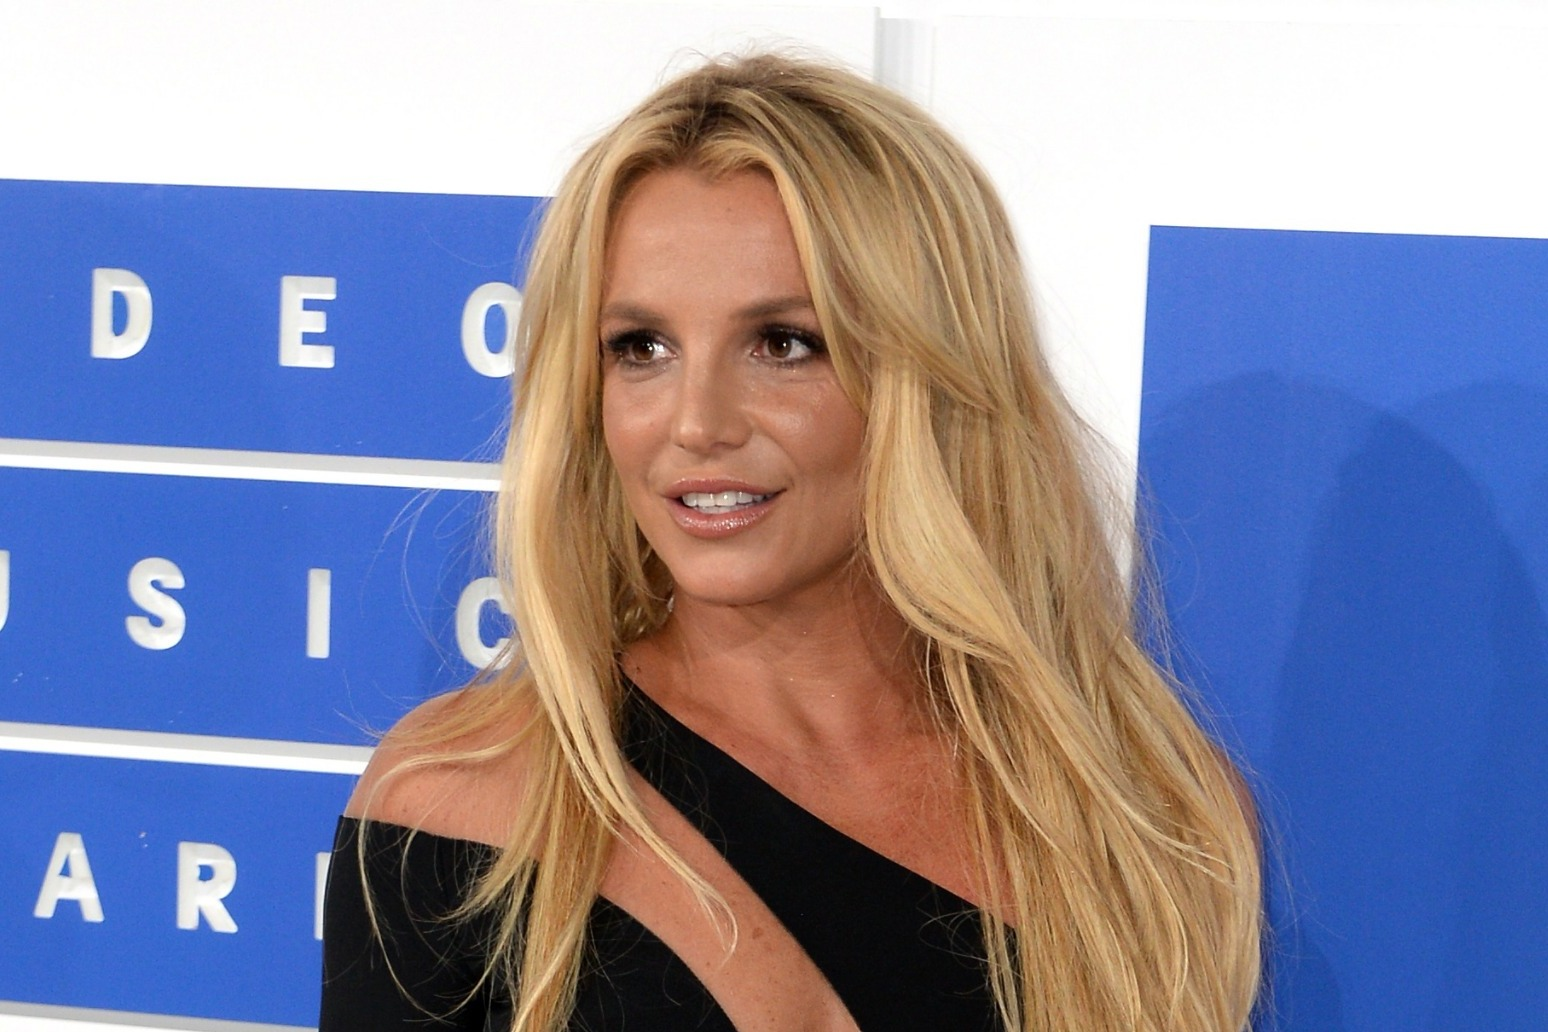 Britney Spears reveals she is engaged to Sam Asghari